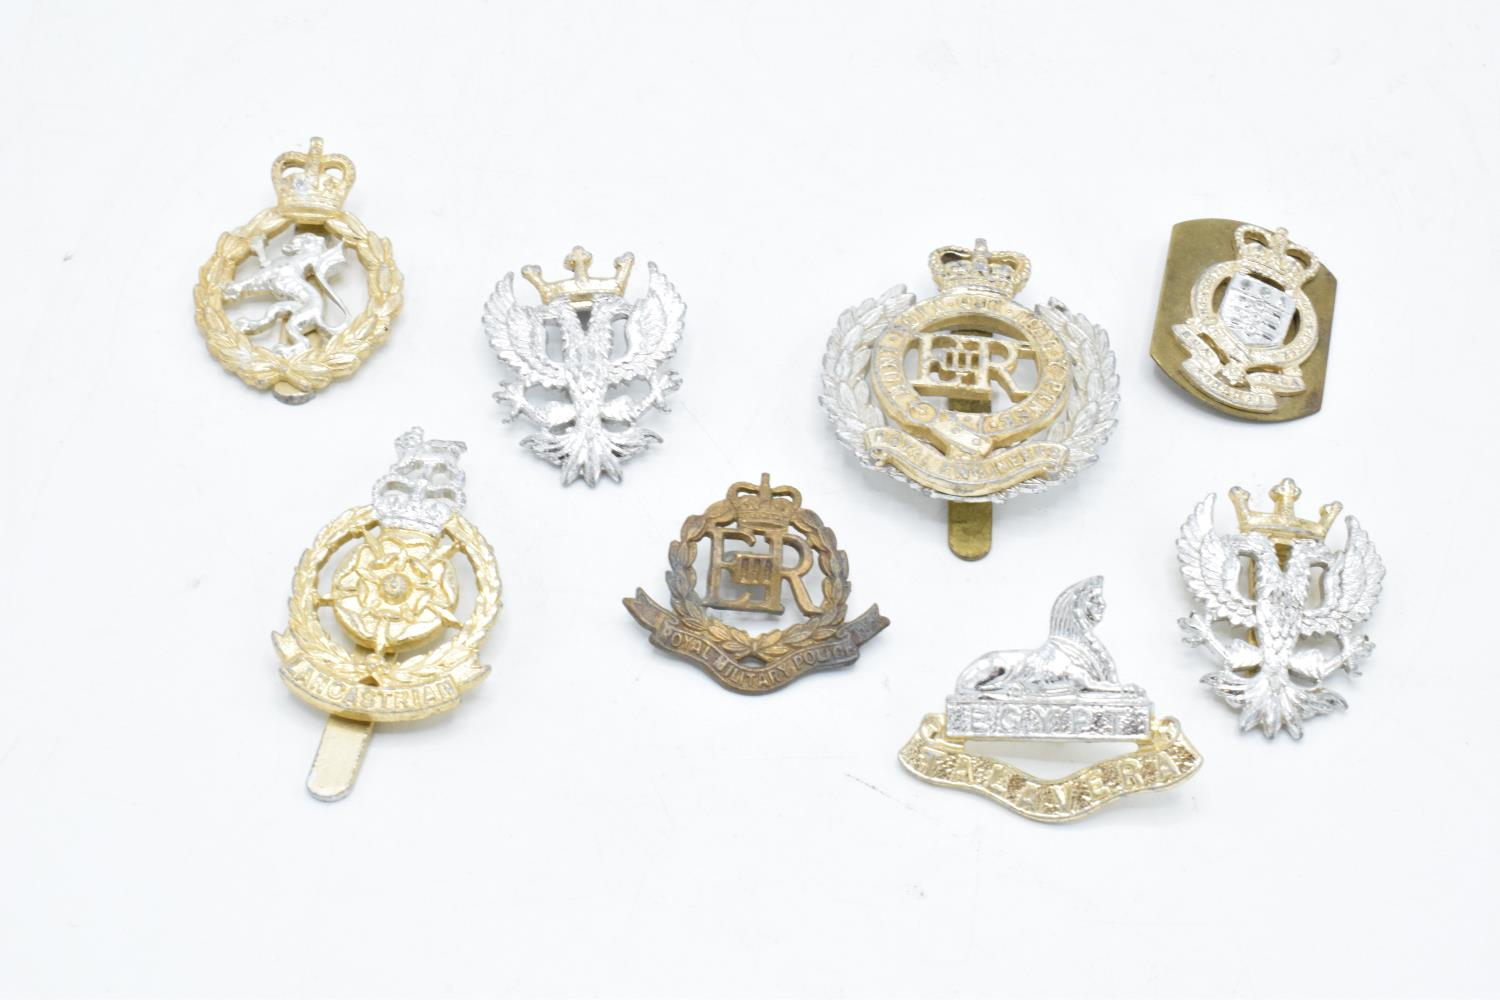 A collection of late 20th century military cap badges from Elizabeth II onwards (8).